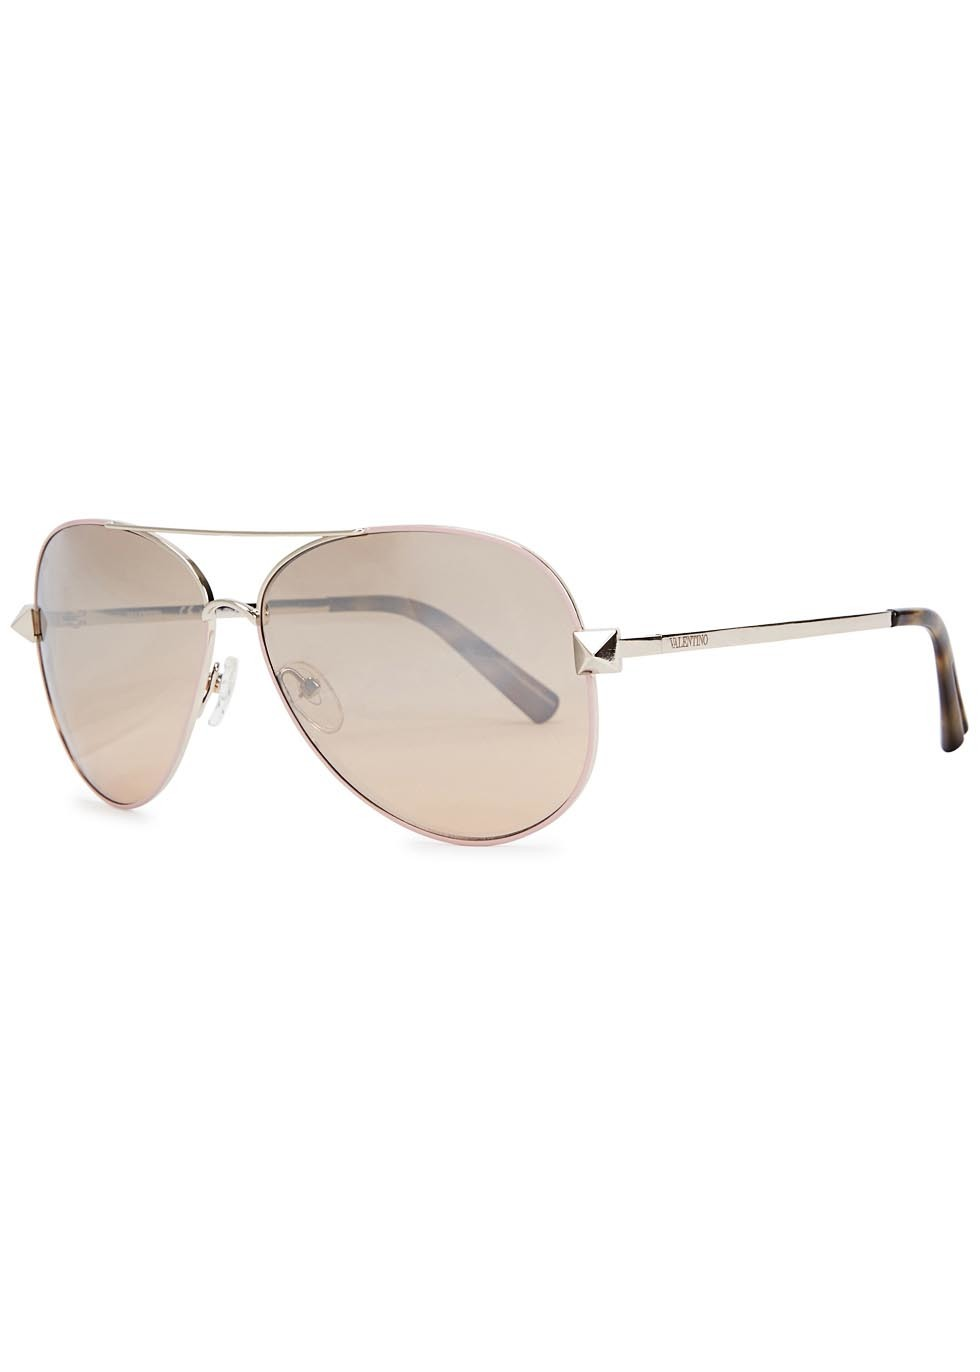 Sand Mirored Aviator Style Sunglasses - predominant colour: gold; occasions: casual, holiday; style: aviator; size: standard; material: chain/metal; pattern: plain; finish: plain; season: a/w 2015; wardrobe: basic